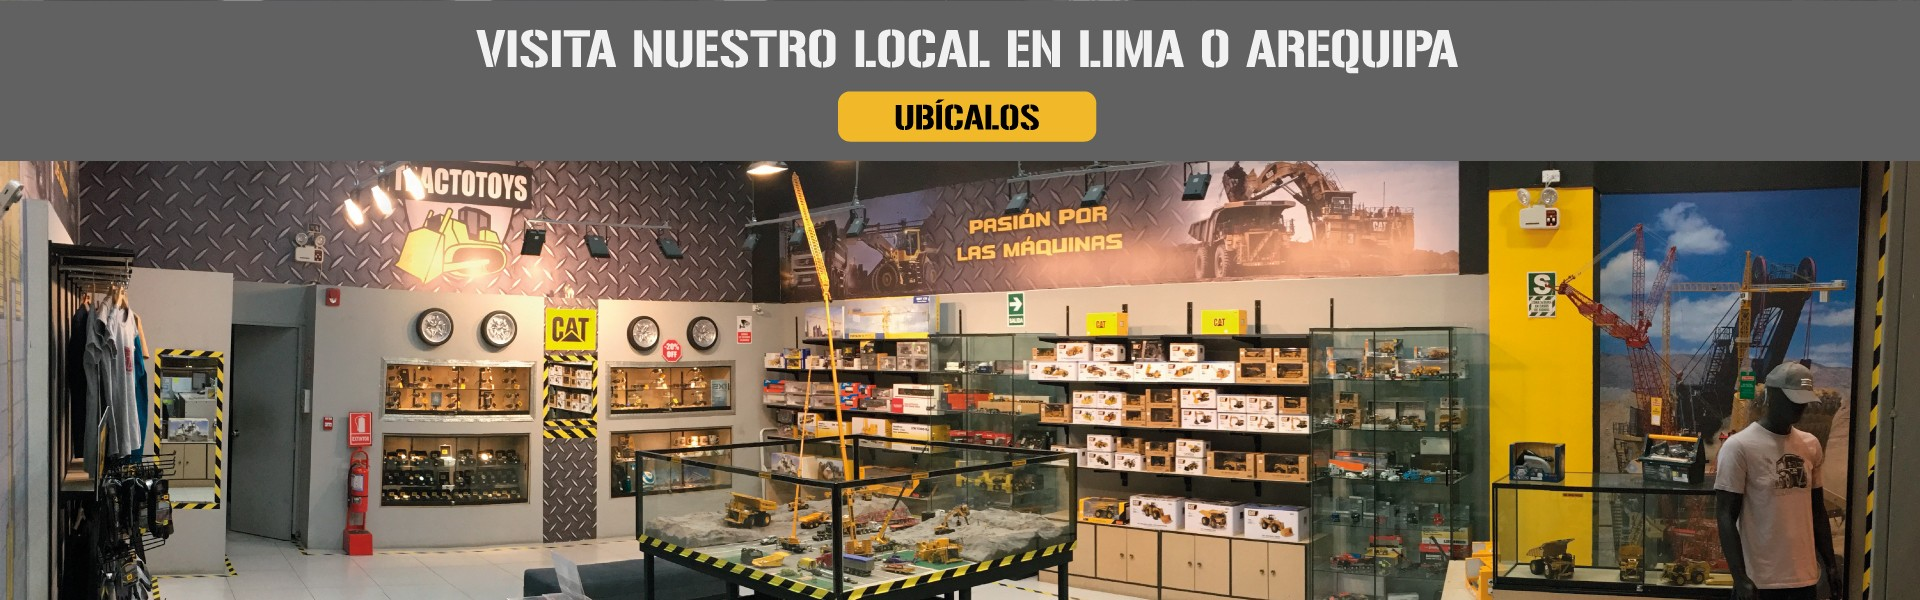 Locales Tractotoys Tractostore Lima Arequipa